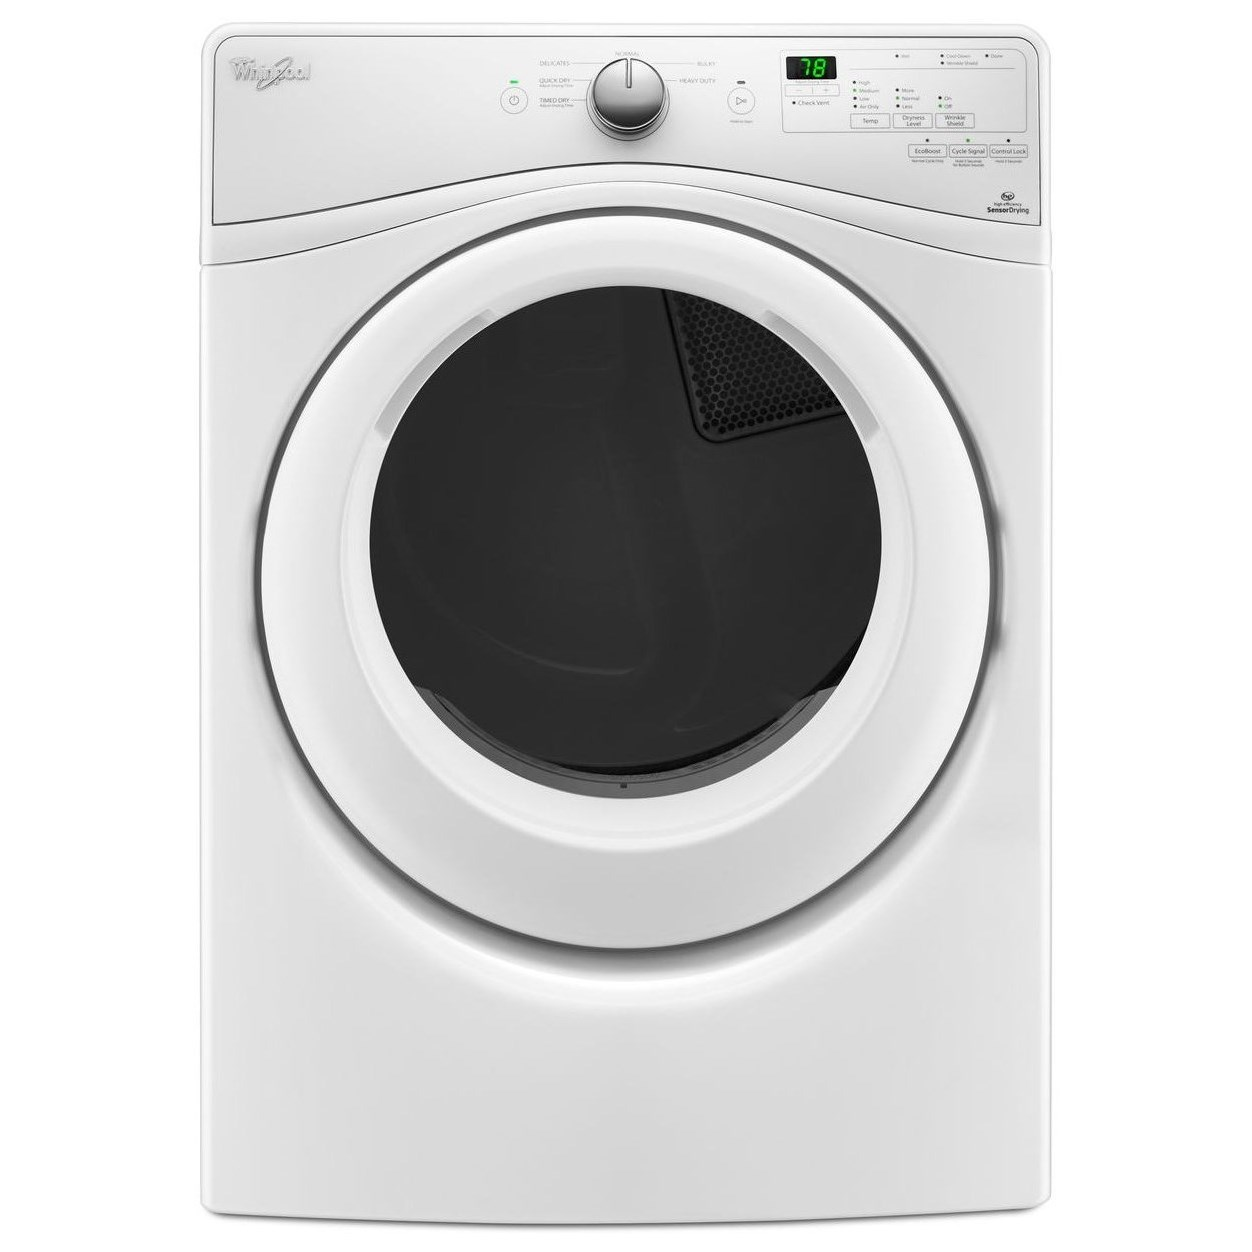 Whirlpool Gas Dryers 7.4 cu. ft. Gas Dryer with Quick Dry Cycle - Item Number: WGD75HEFW